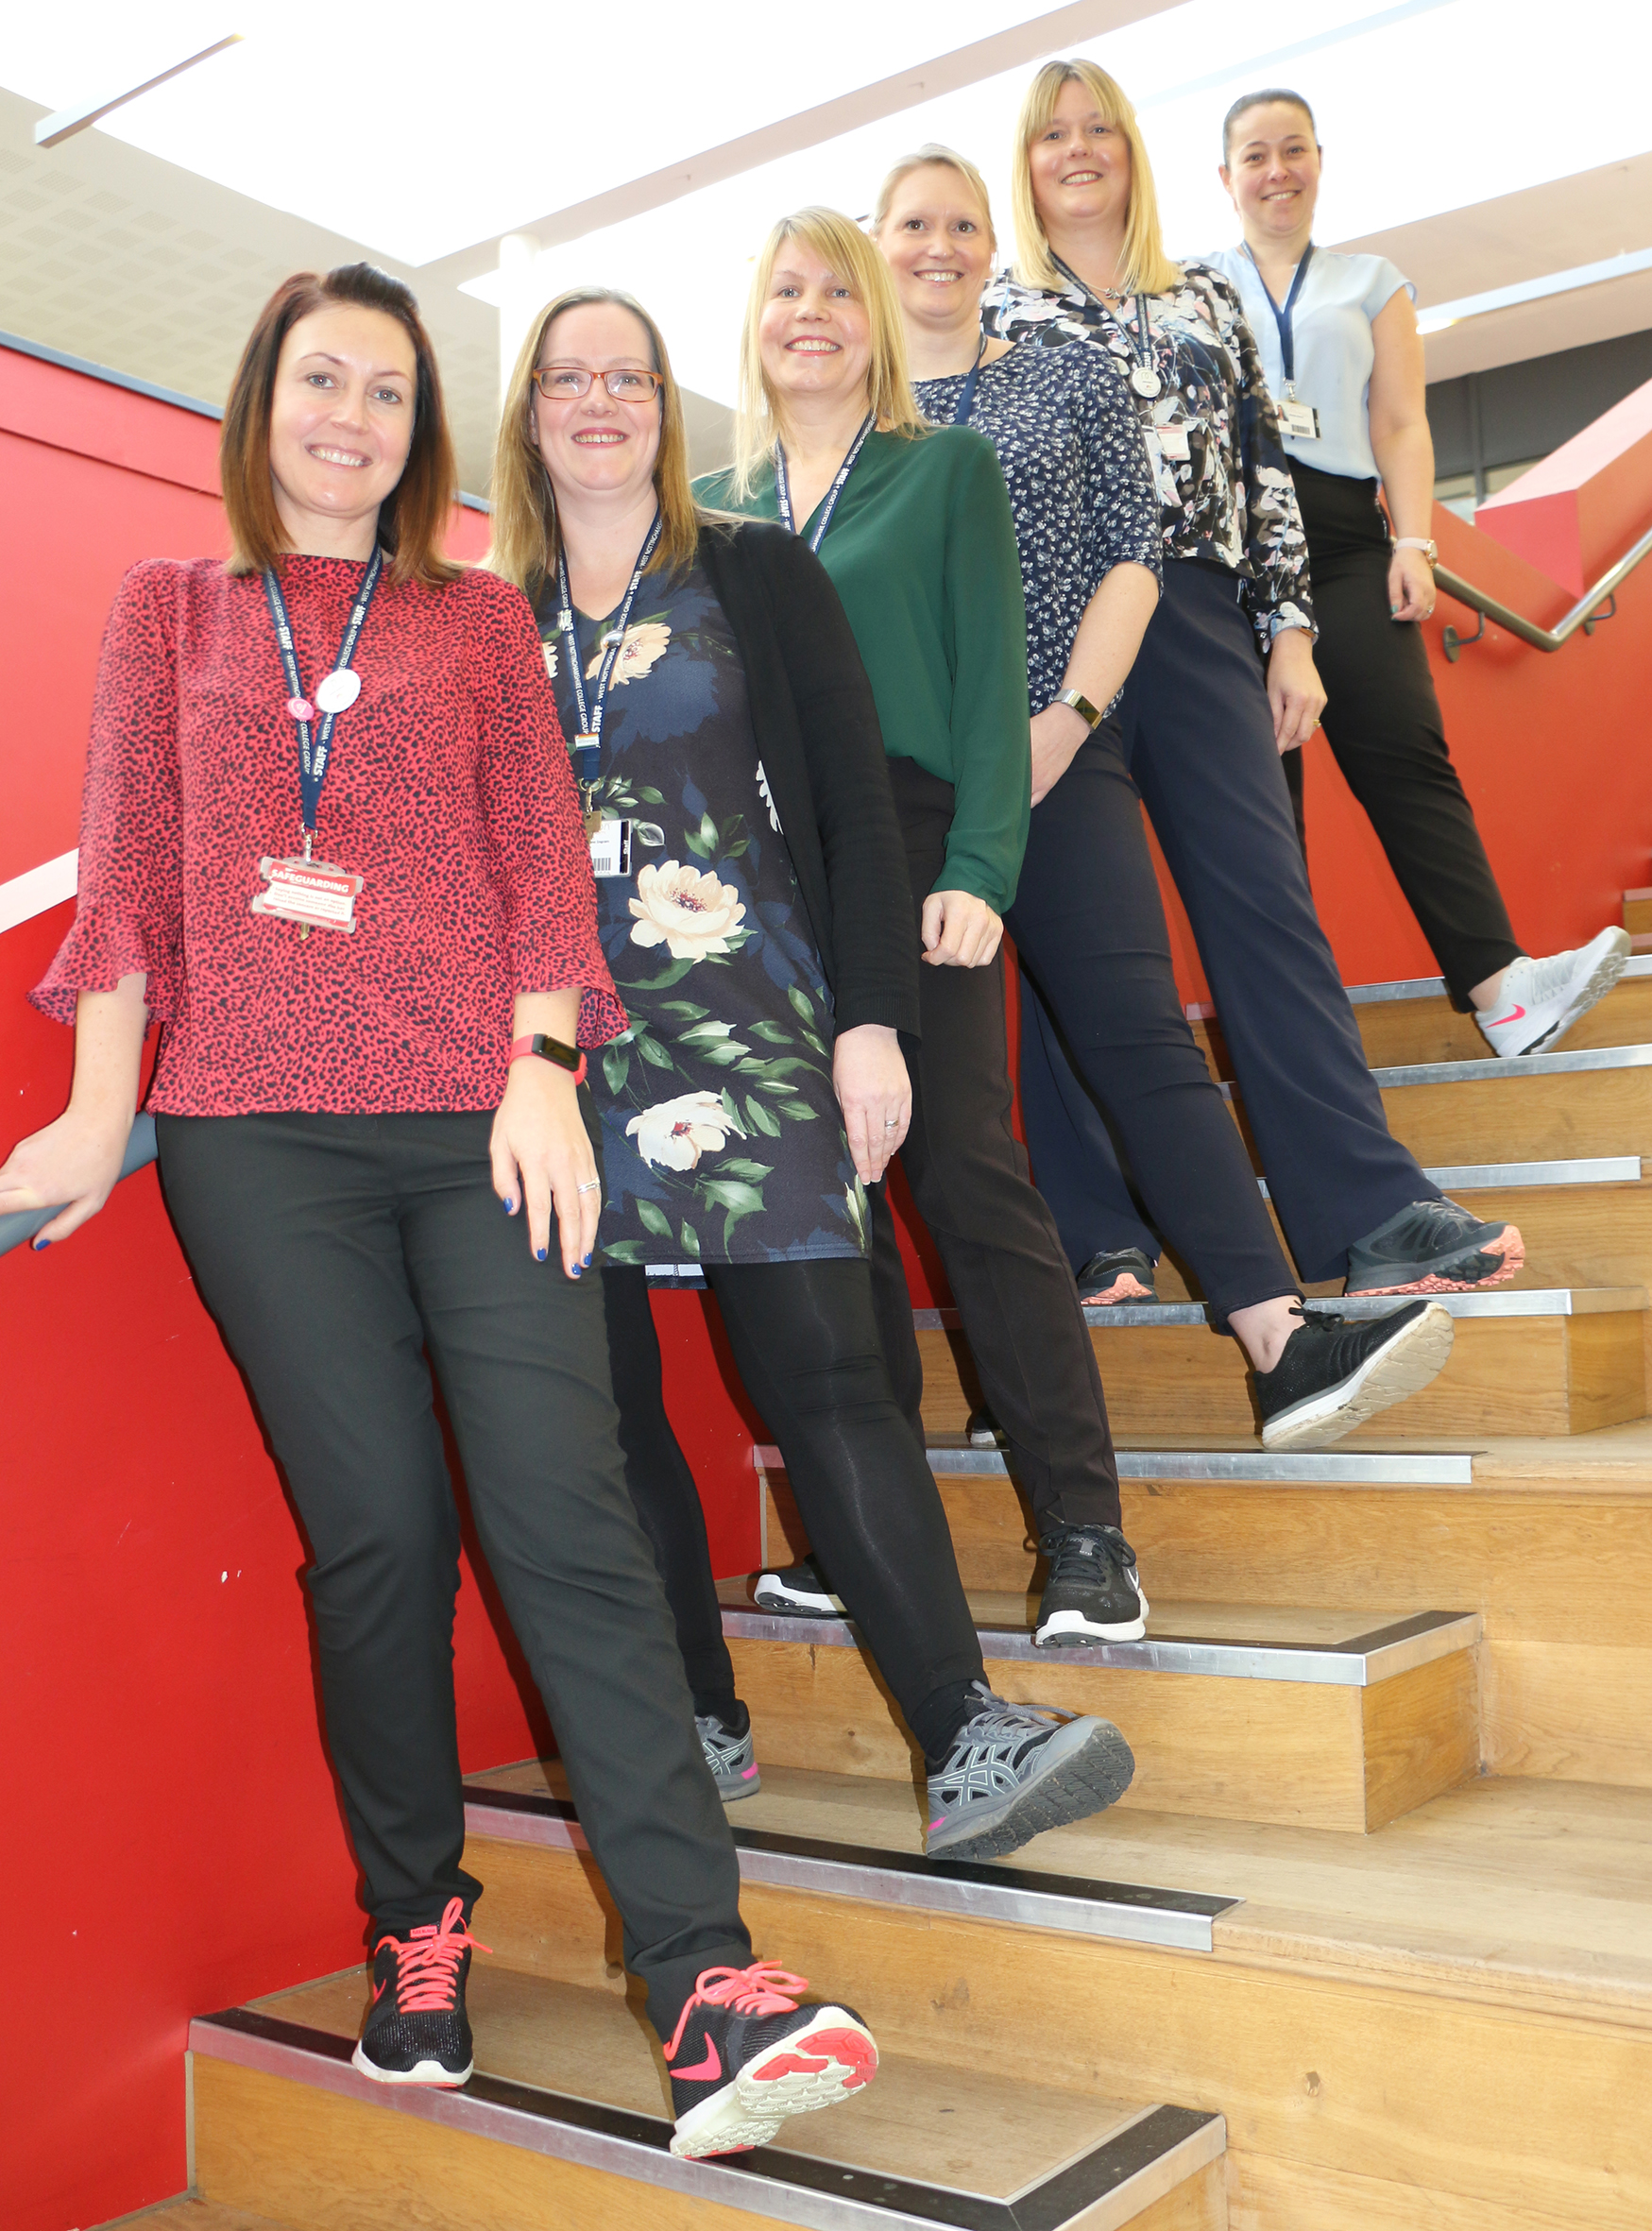 Staff march on through March for charity